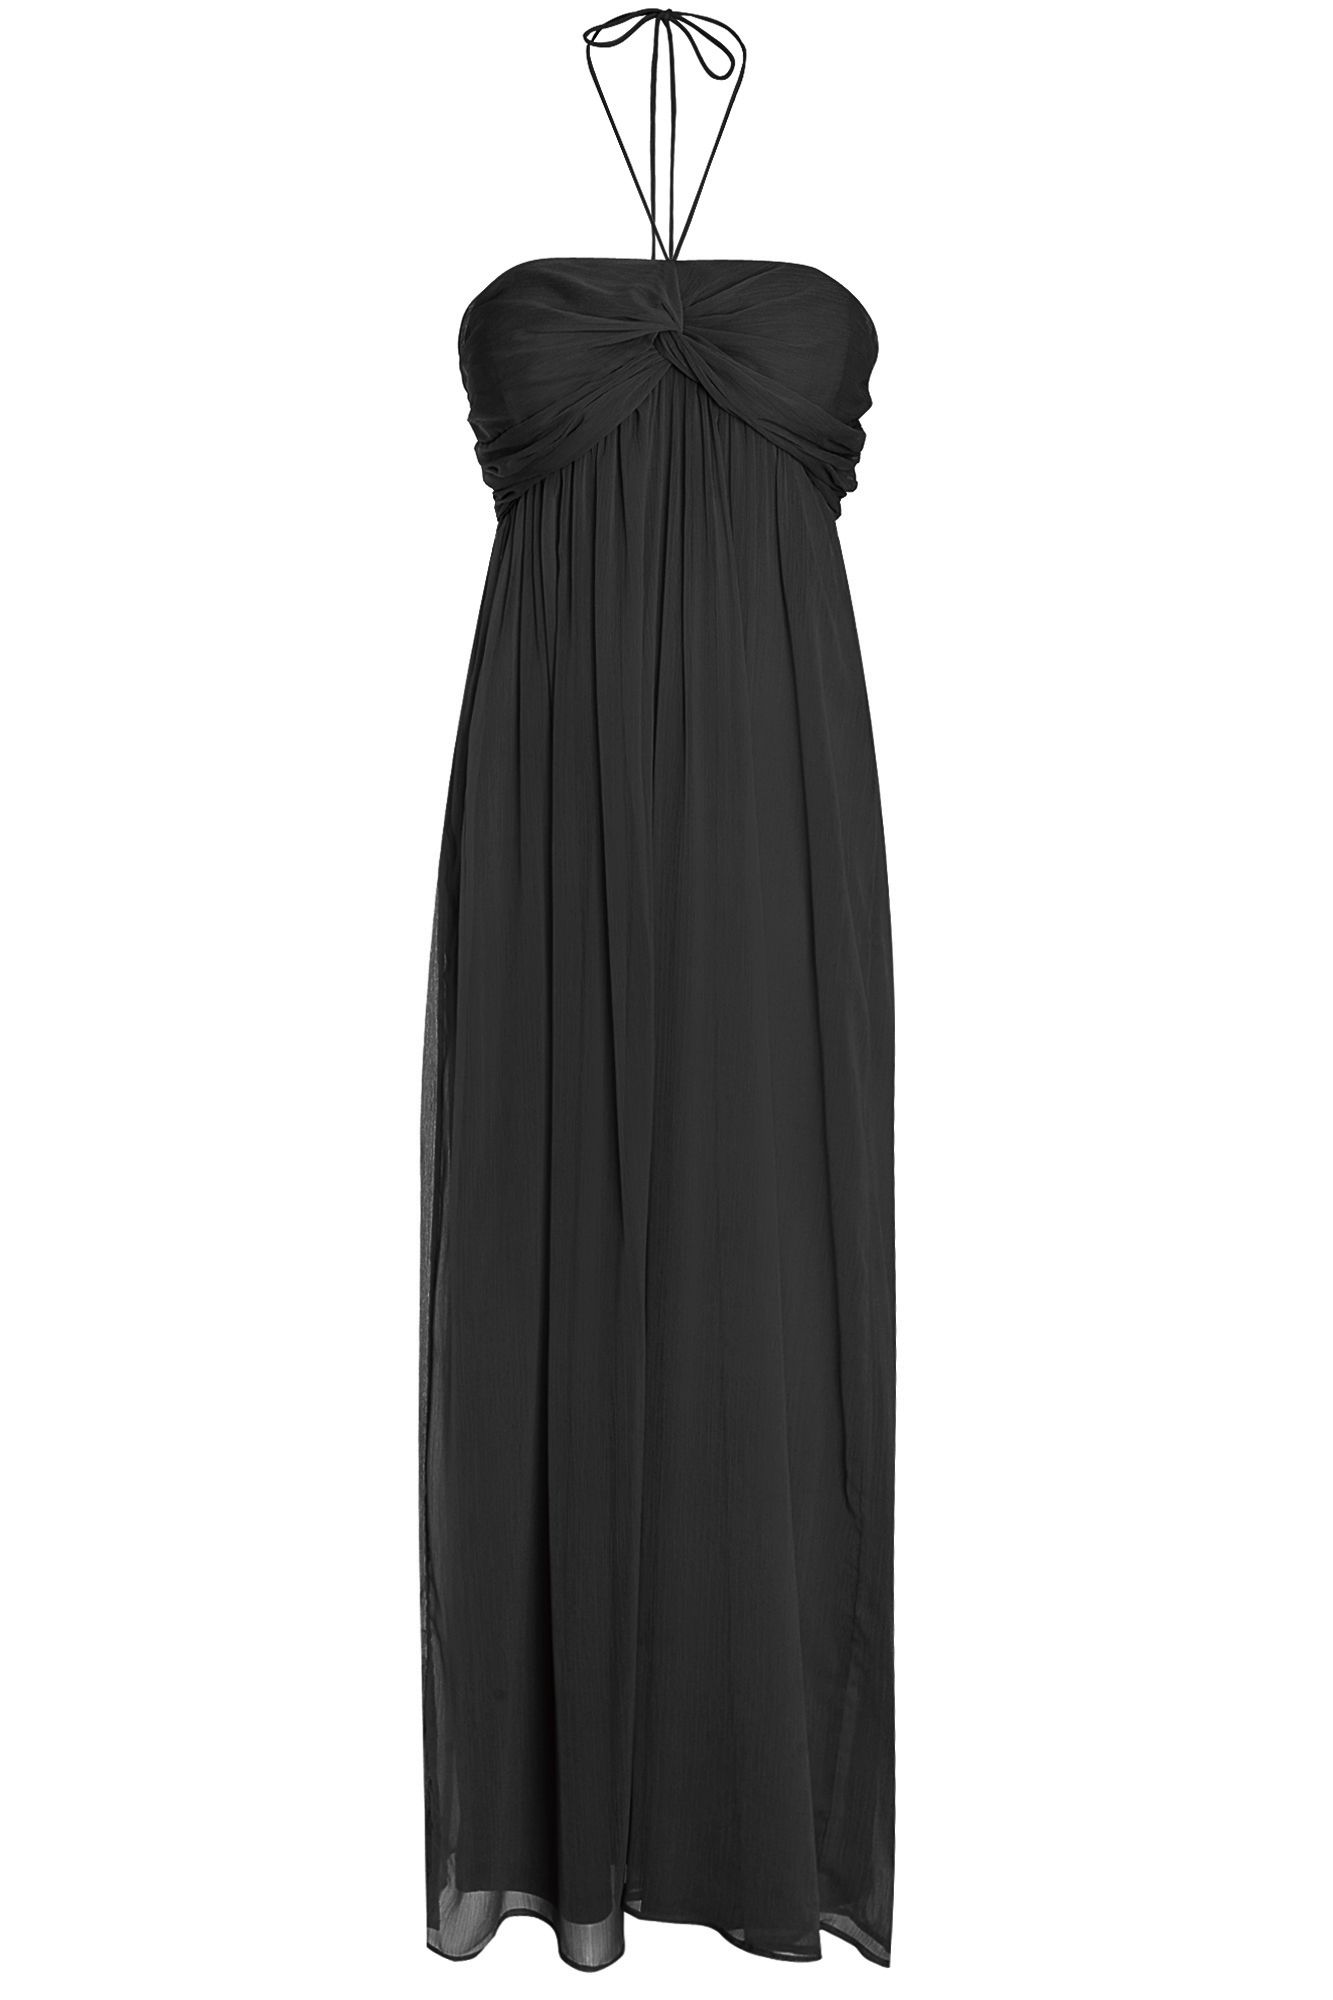 Atelier 61 Atelier 61 Ruched Halterneck Maxi Dress, Black